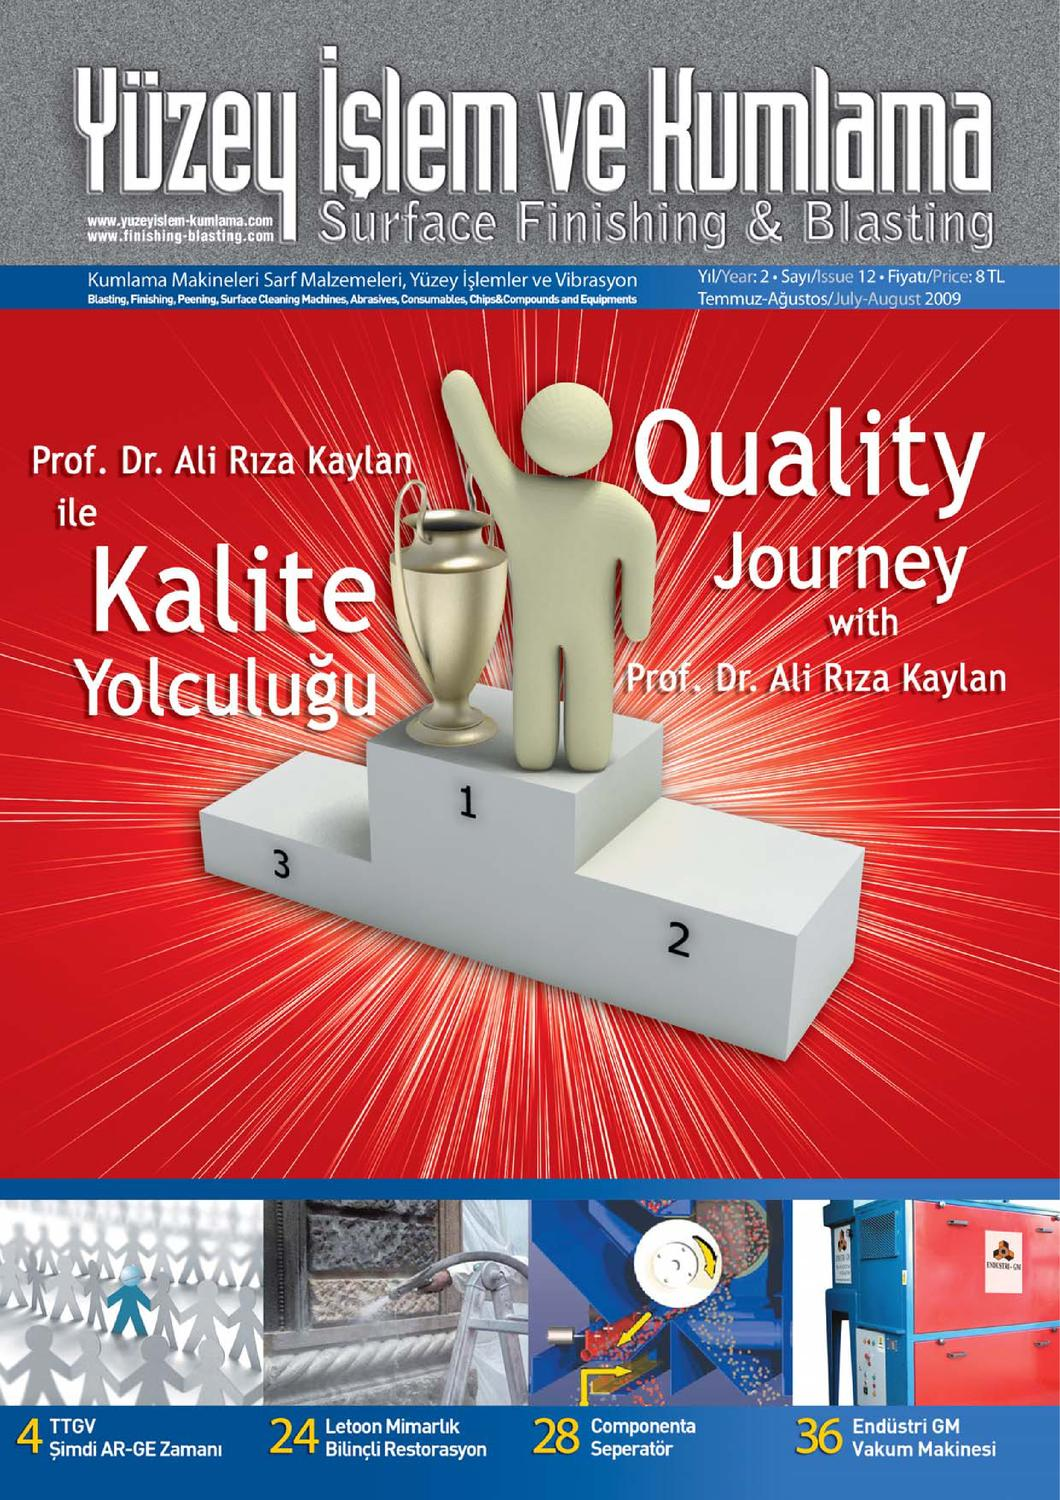 Yuzey Islem Ve Kumlama Dergisi Sayi 12 By Surface Finishing Issuu